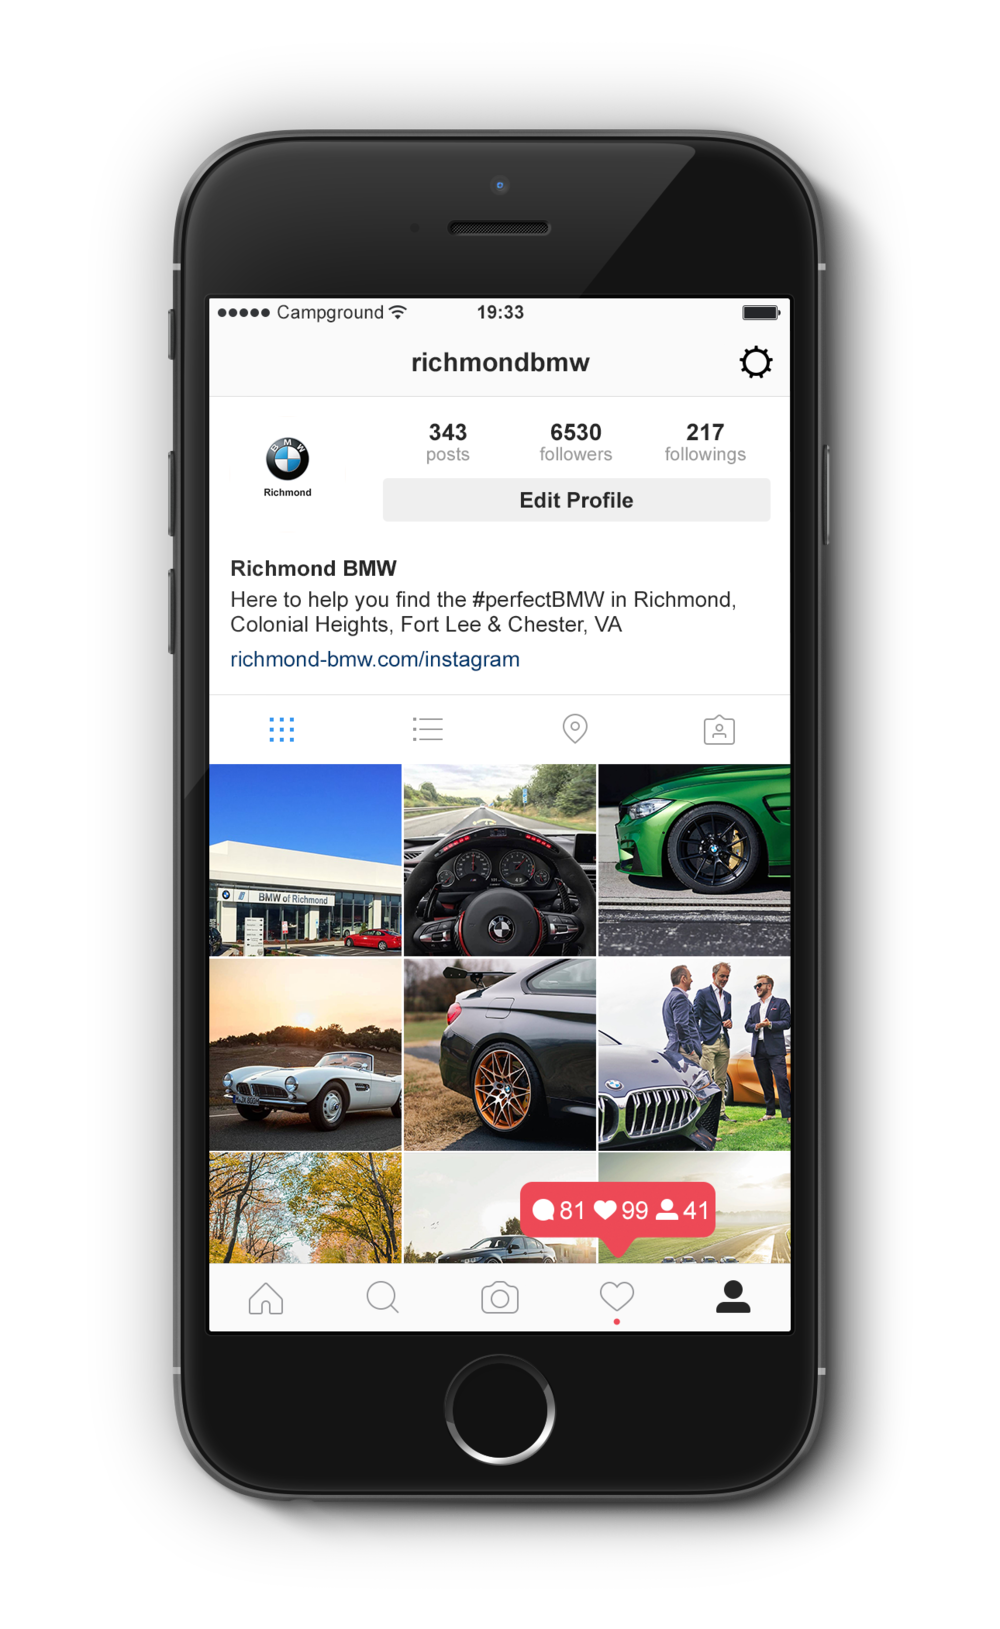 Campground + Asbury - Effortlessly scale your Instagram feed to reach and interact with the right audience. Our technology connects you to real local customers.Our technology platform combined with the expertise of our team delivers a newfound social media presence across ALL of the Asbury Automotive Group's marques.Campground Automotive's powerful growth technology allows for automotive groups like Asbury to scale up all of their brands simultaneously, from BMW to Nissan to Acura, we can help your marketing teams (internal or agency) reach new customers as well as engage and retain existing ones.